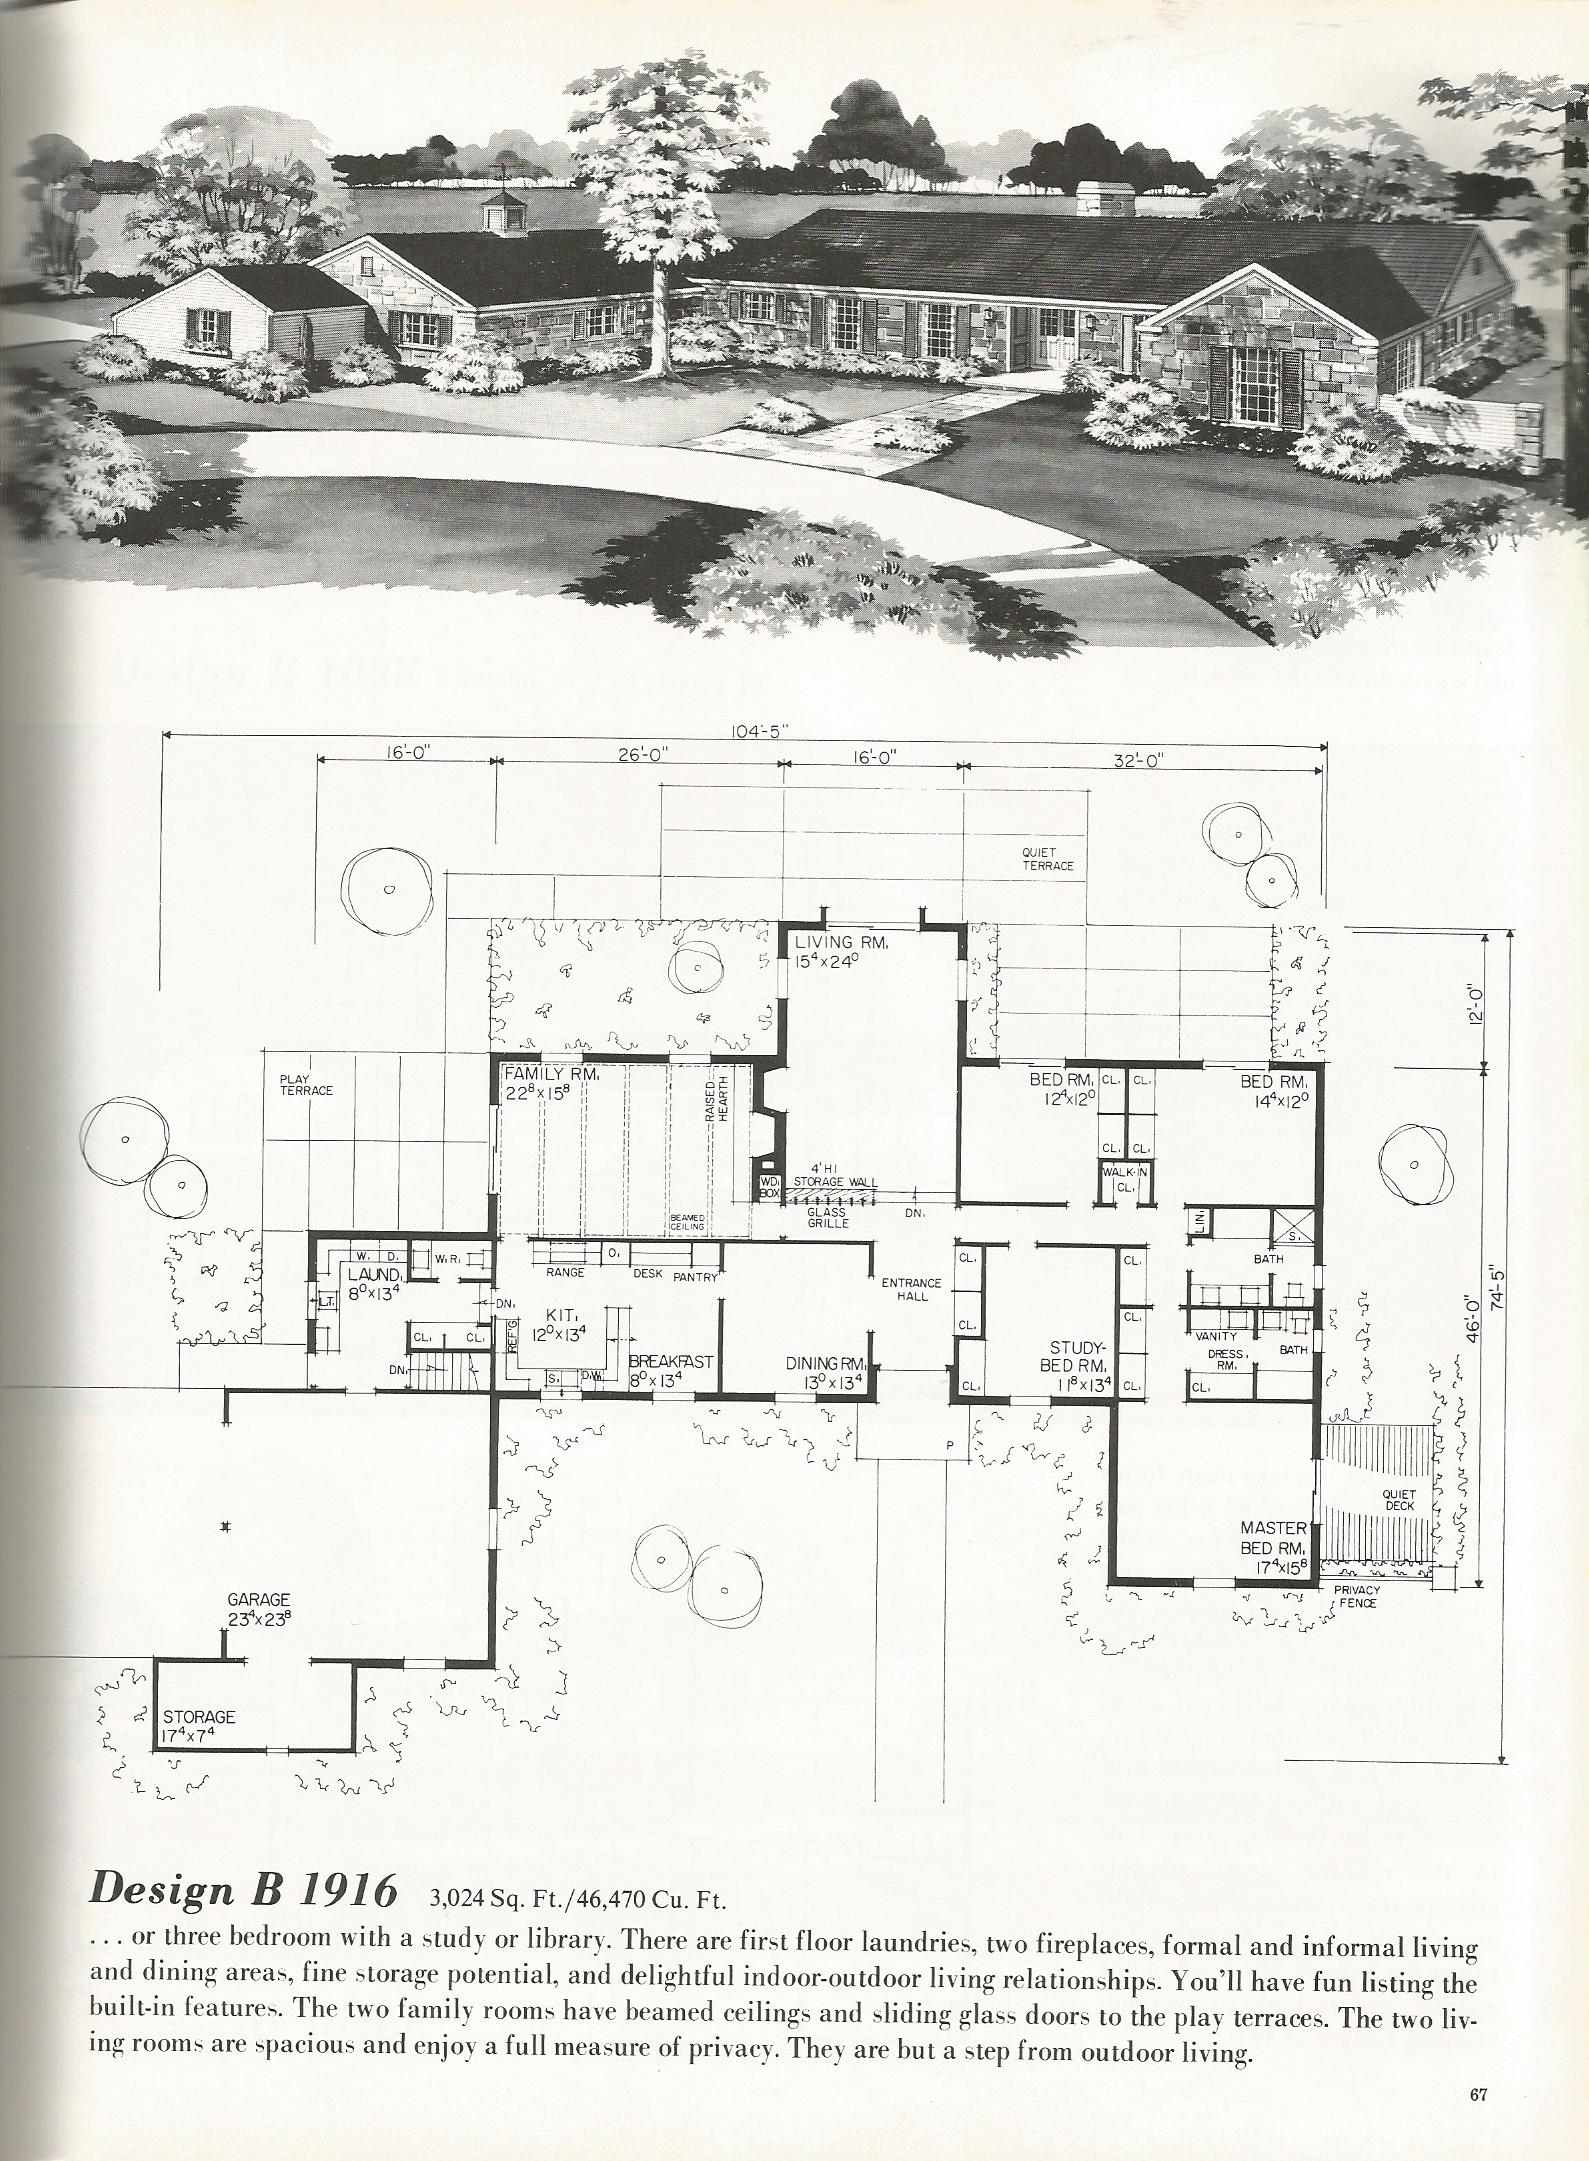 Vintage house plans luxurious homes 1916 antique alter ego for Vintage floor plans